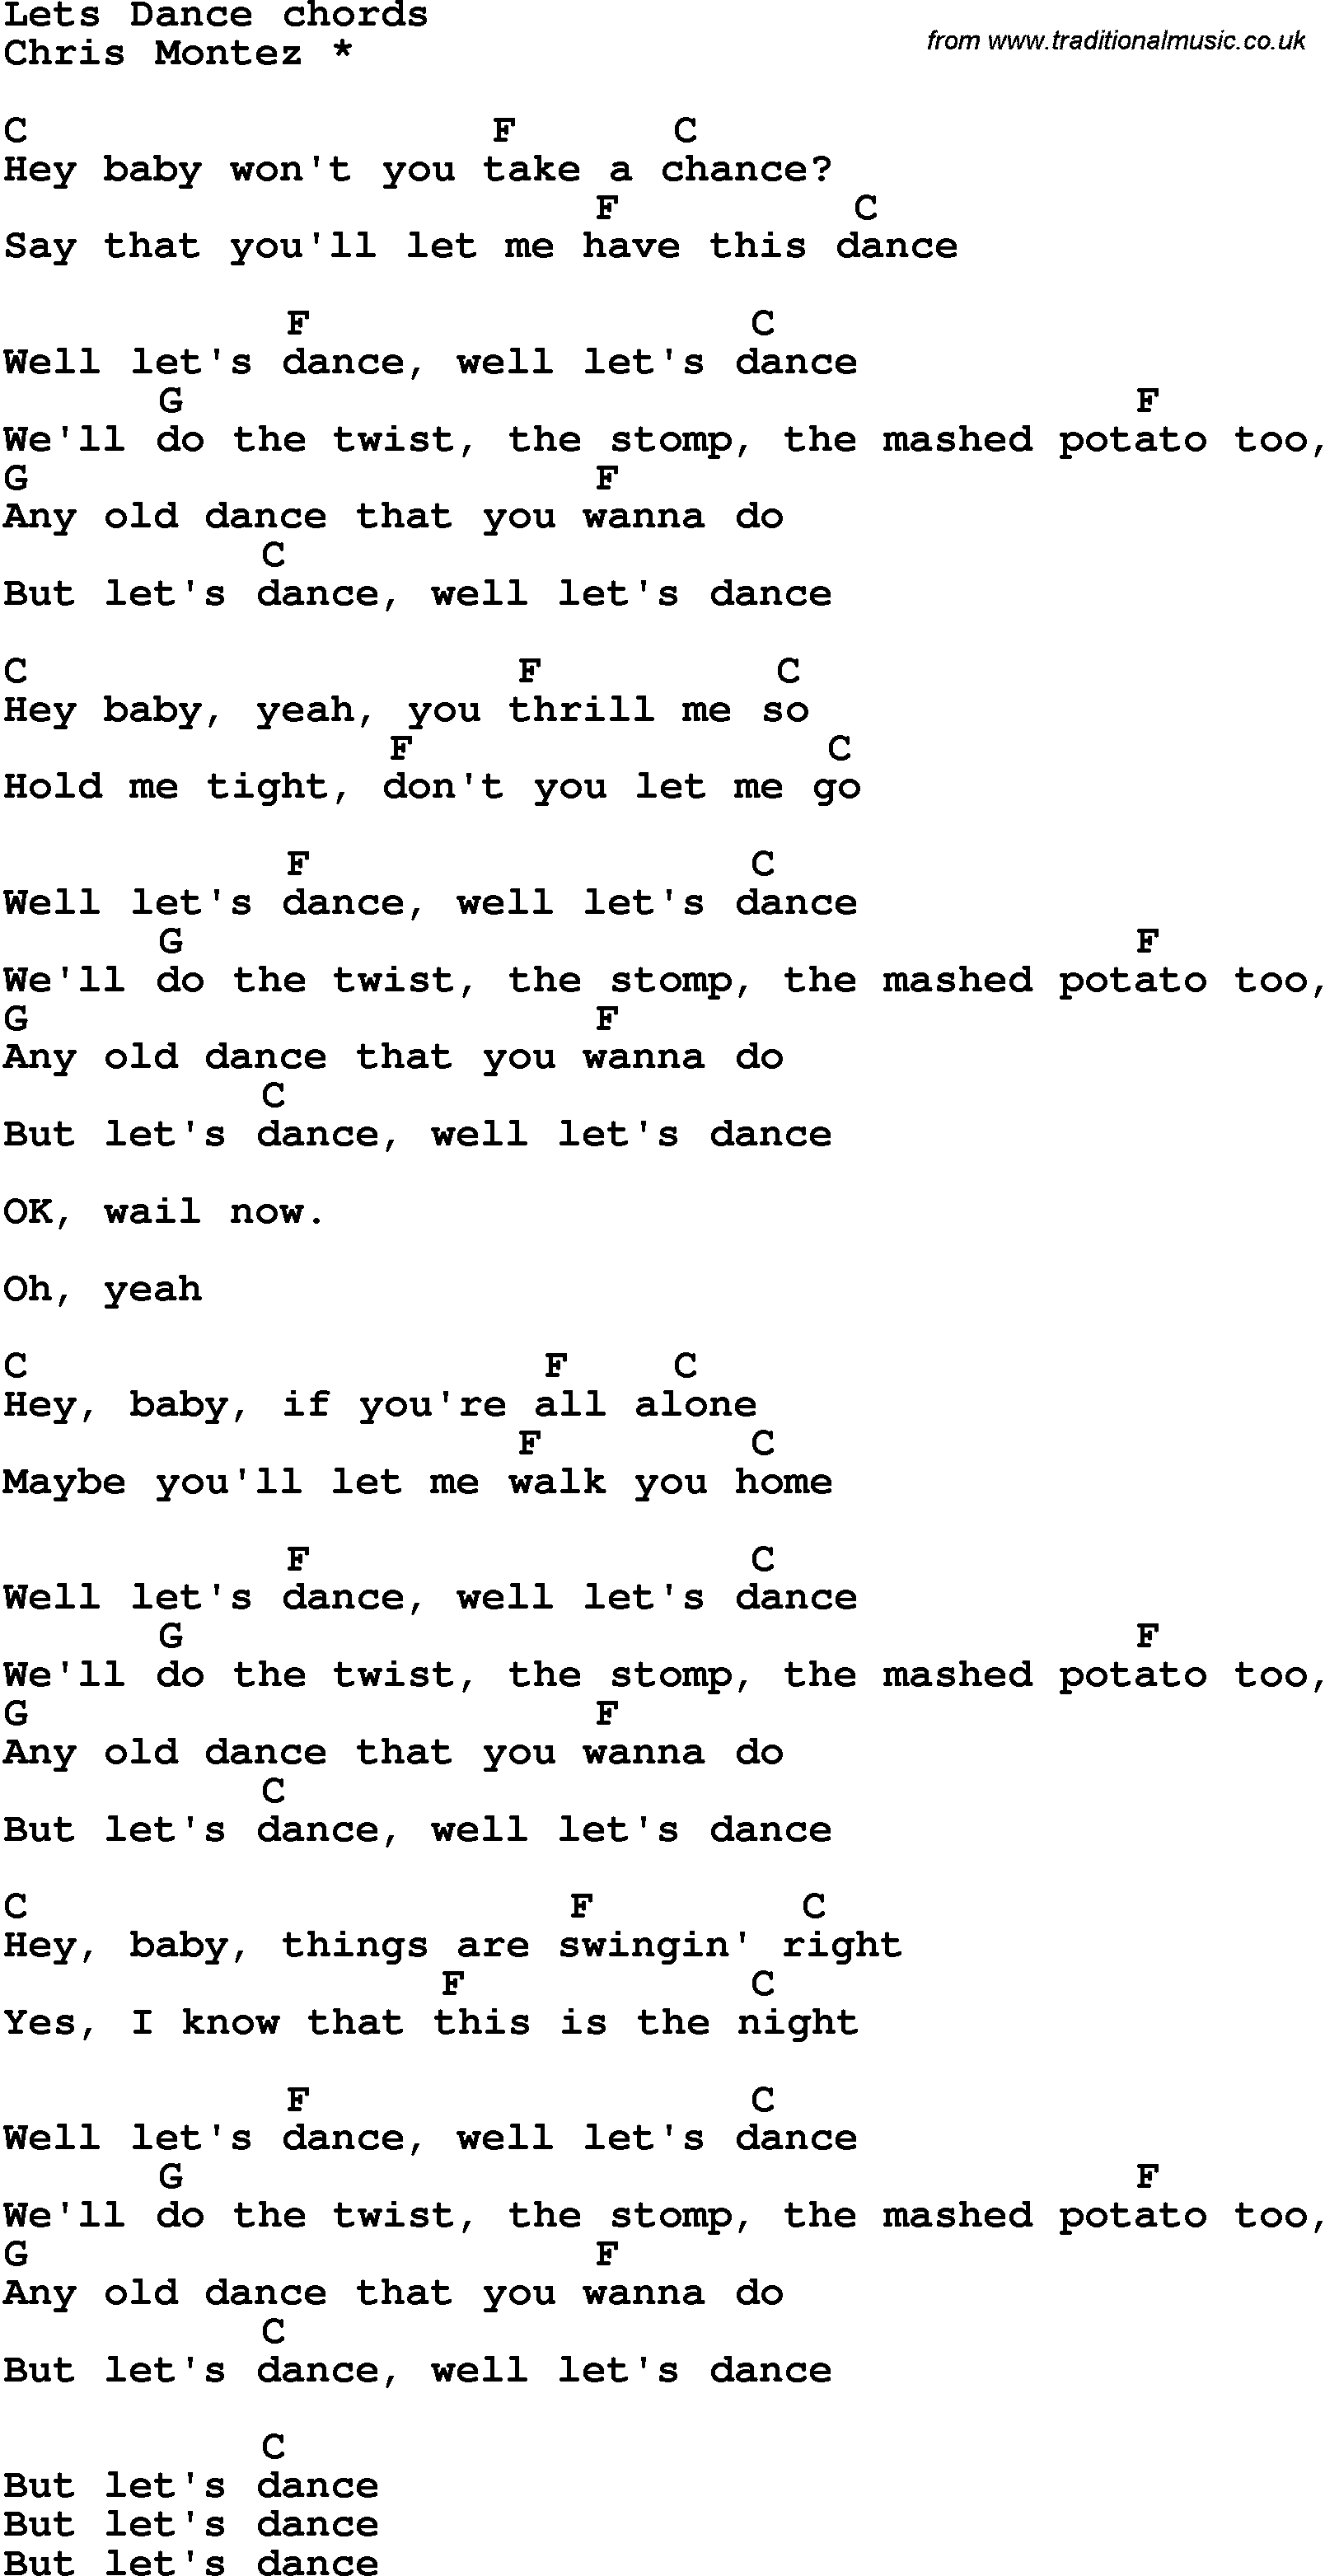 Song Lyrics With Guitar Chords For Lets Dance